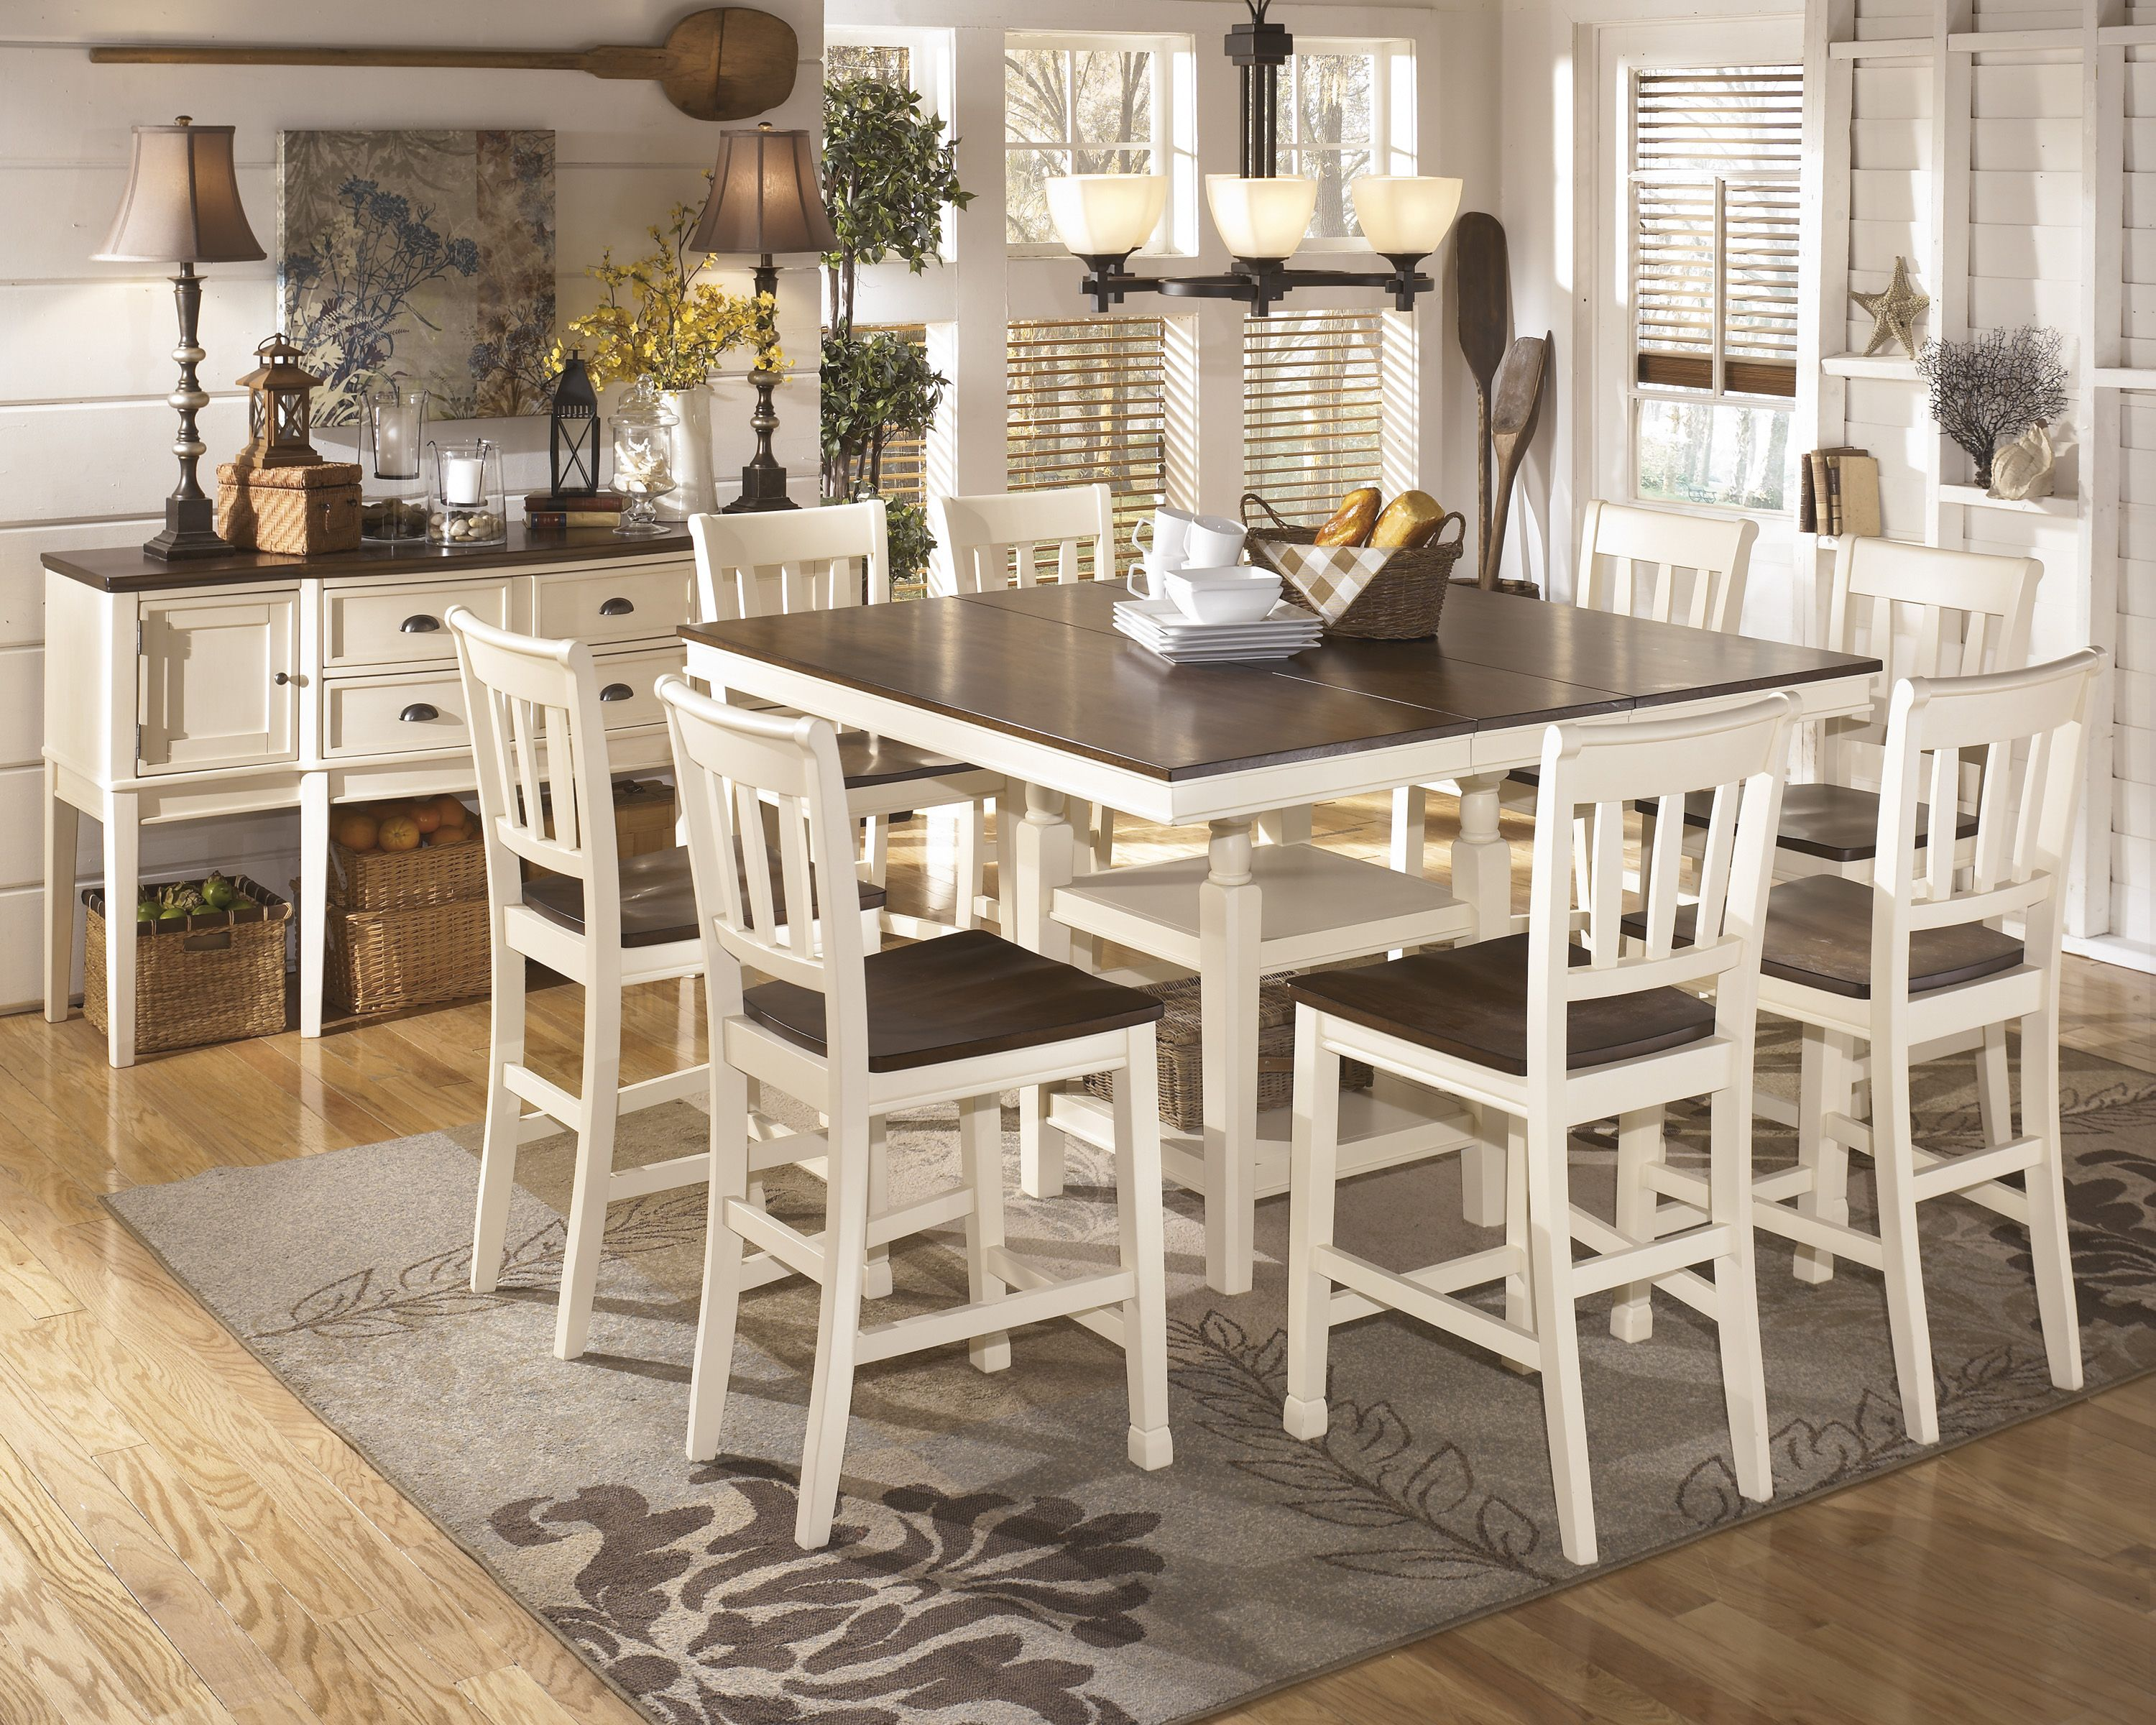 The Whitesburg 54 X 54 Counter Height Table W 8 Bar Stools